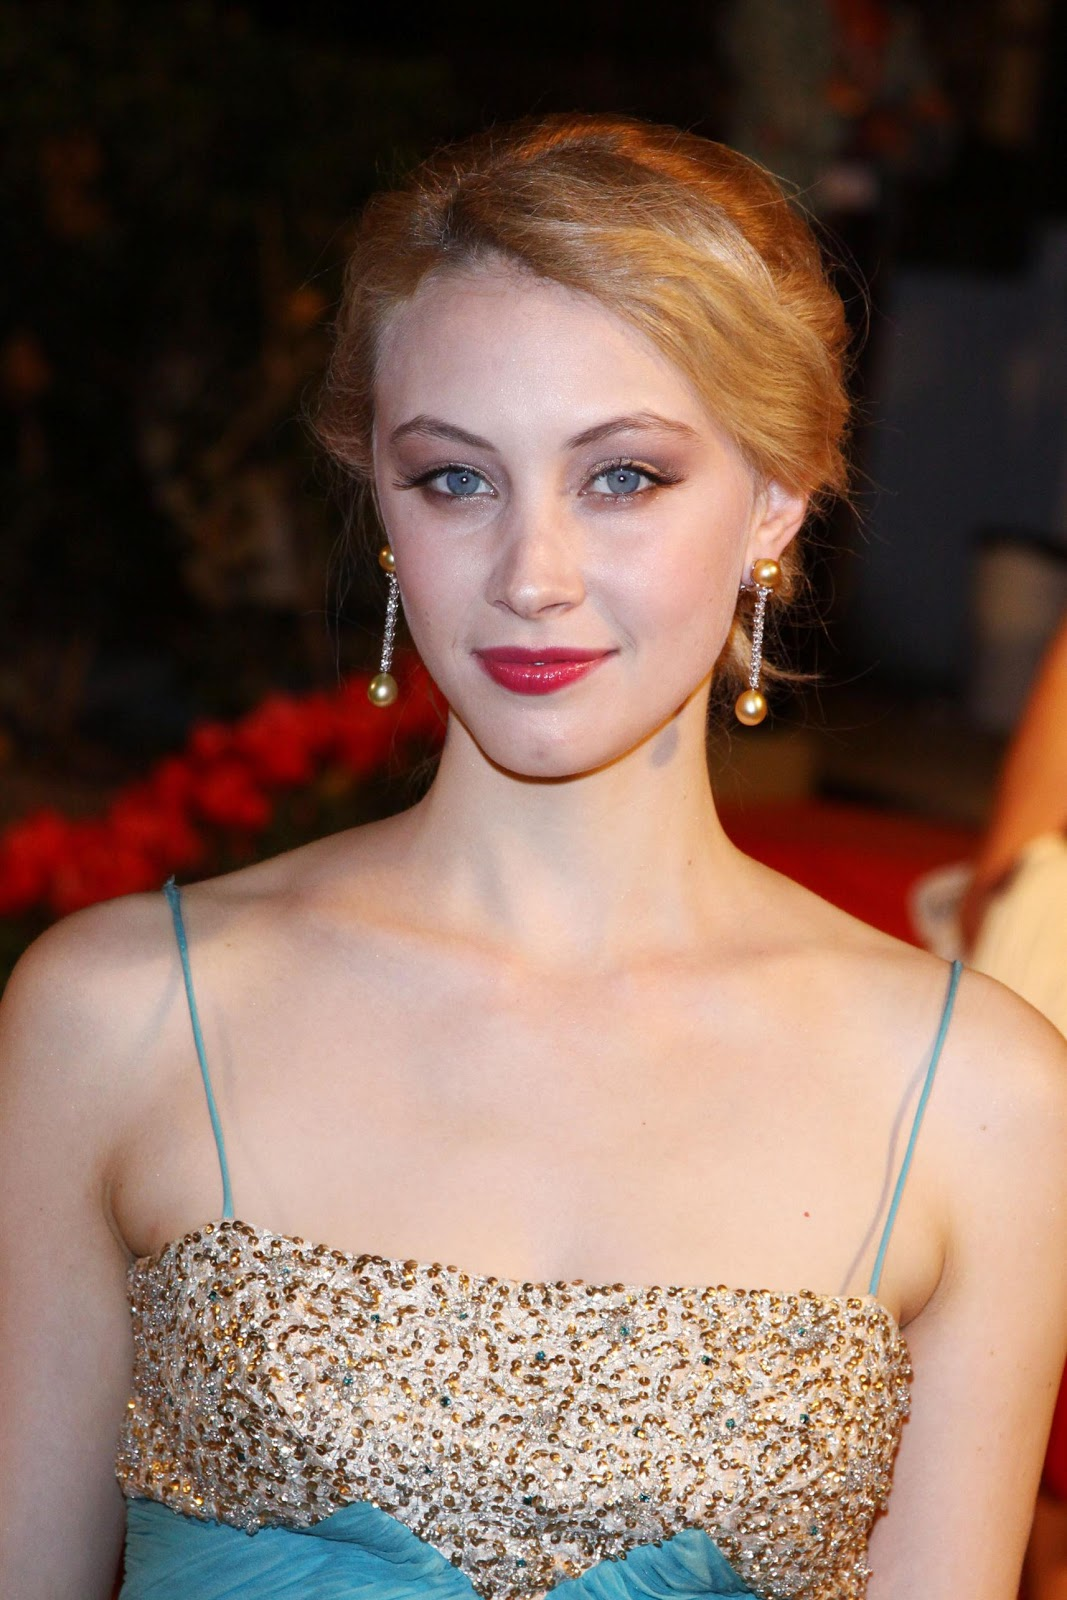 Celebrity Photos Dracula Untold actress Sarah Gadon HD Wallpapers & Photos